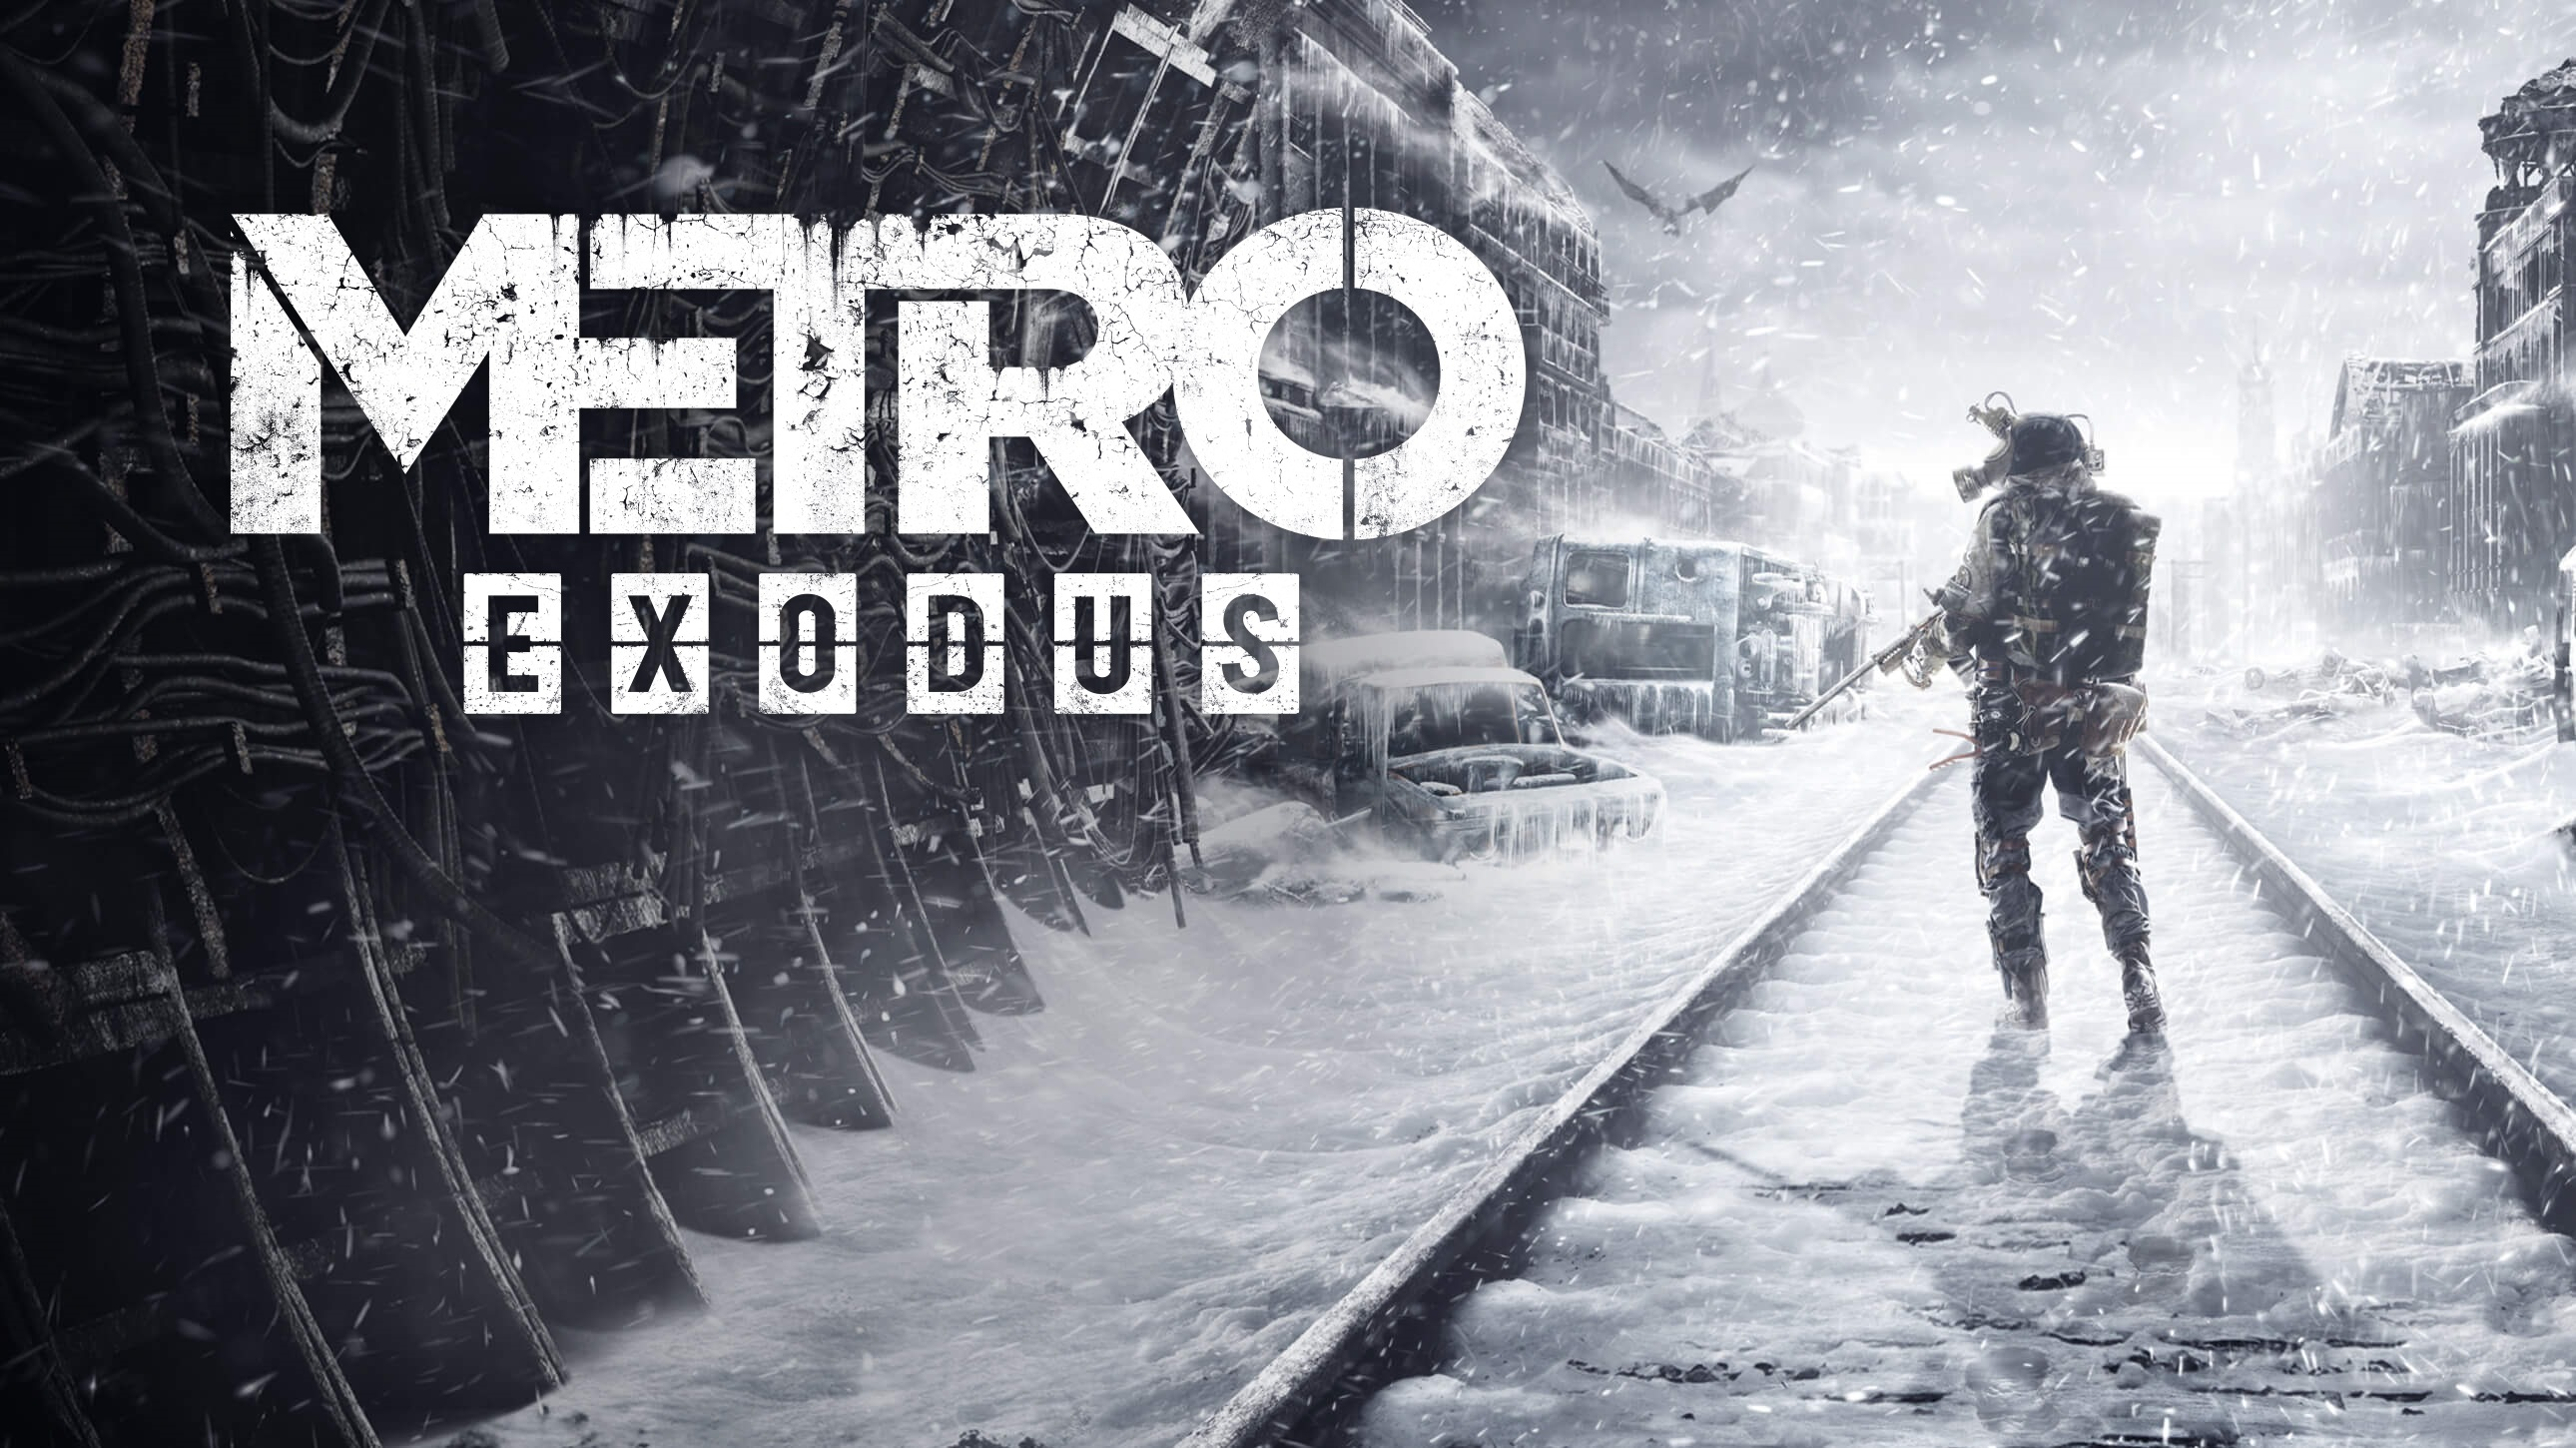 Metro Exodus A Beautiful Brutal Single Player Gamewith Insane RTX Perks Ars Technica